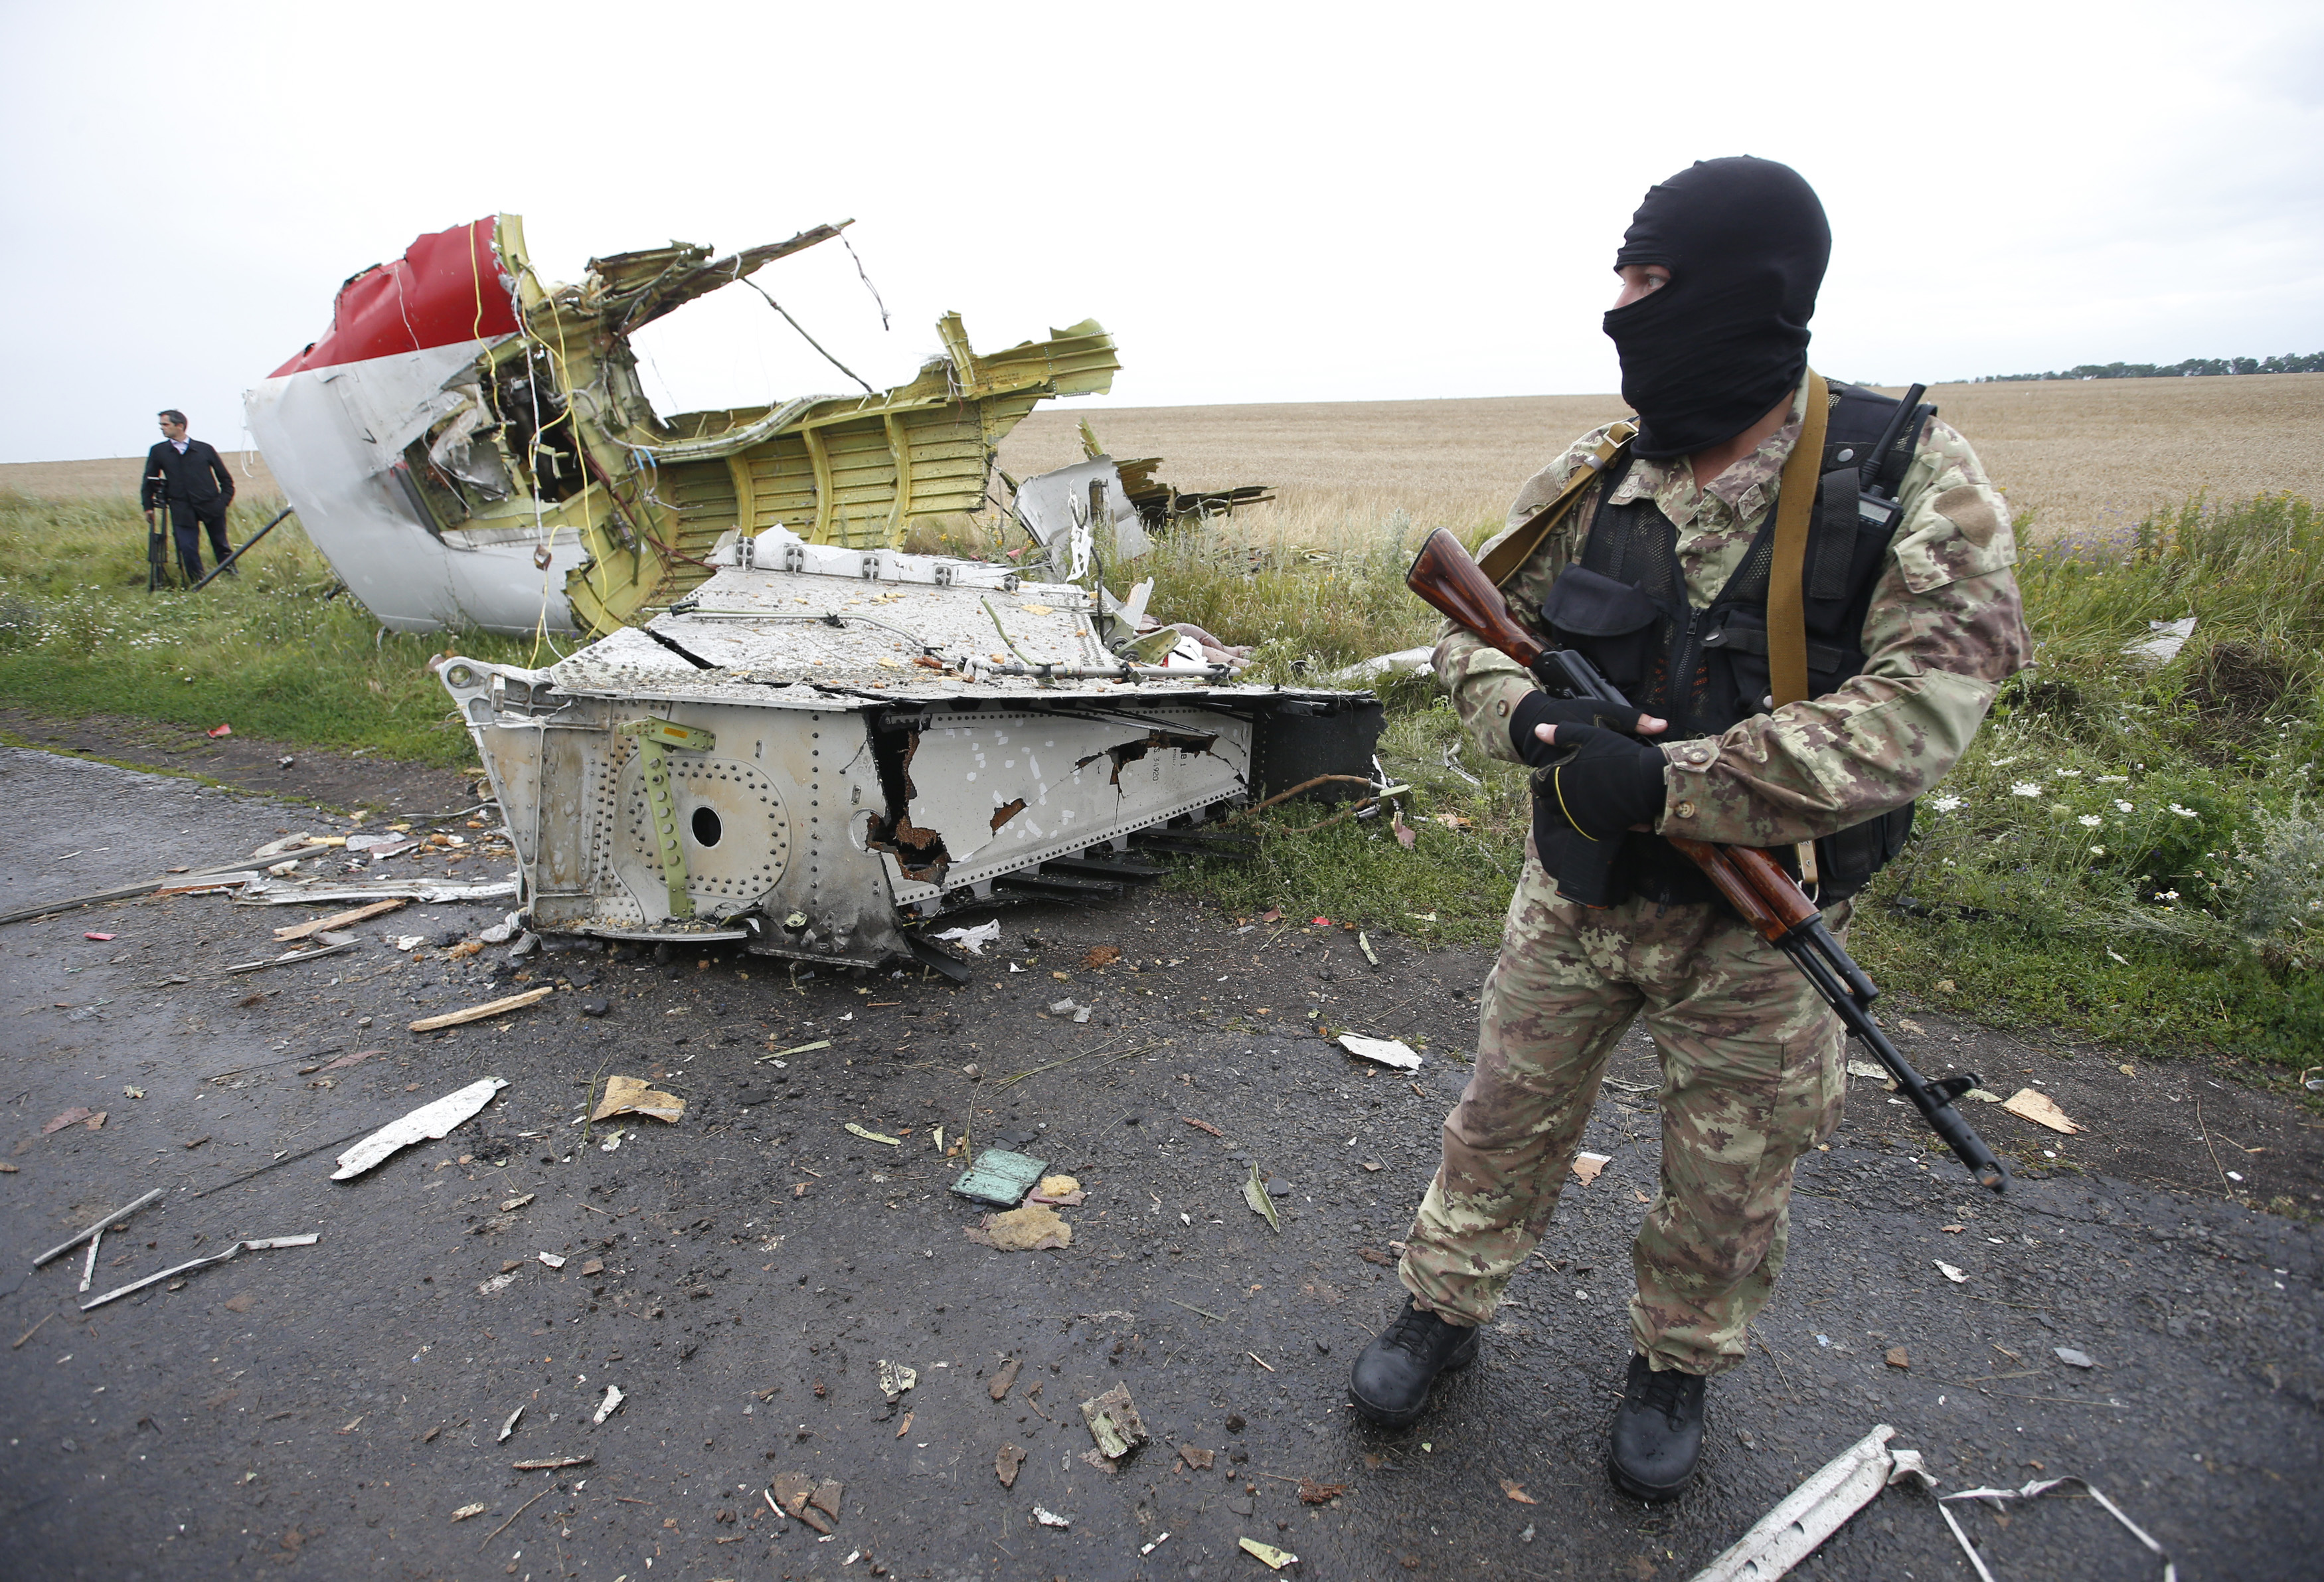 A pro-Russian separatist stands at the crash site of Malaysia Airlines flight MH17, near the settlement of Grabovo in the Donetsk region, July 18, 2014.